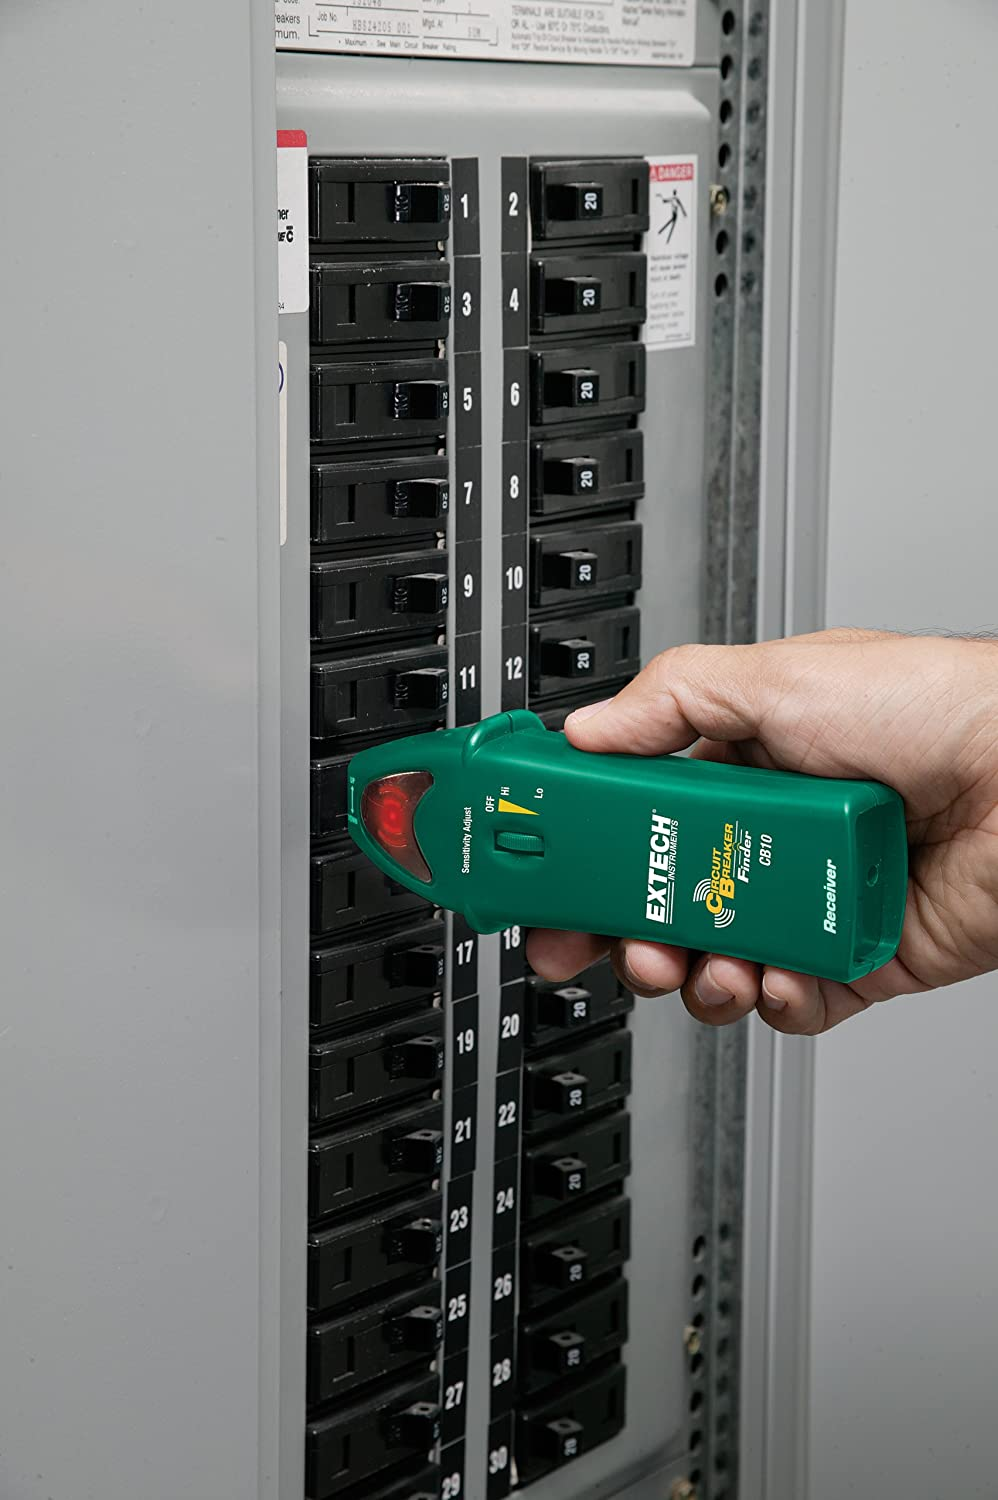 Extech CB10 Circuit Breaker Finder - Circuit Testers - Amazon.com